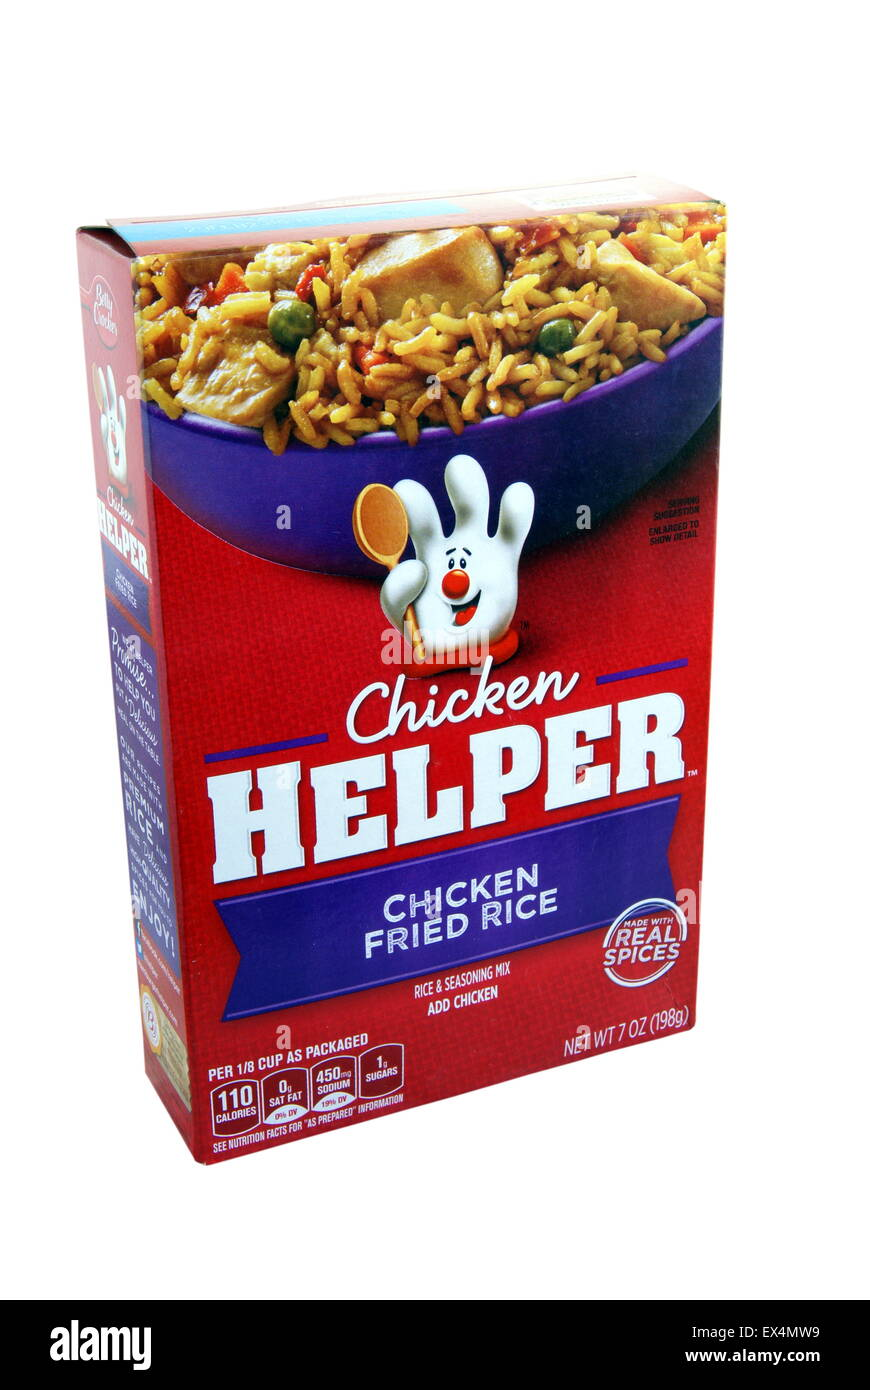 Chicken Helper Chicken Fried Rice prepared box meal. Betty Crocker food product distributed by General Mills Sales - Stock Image